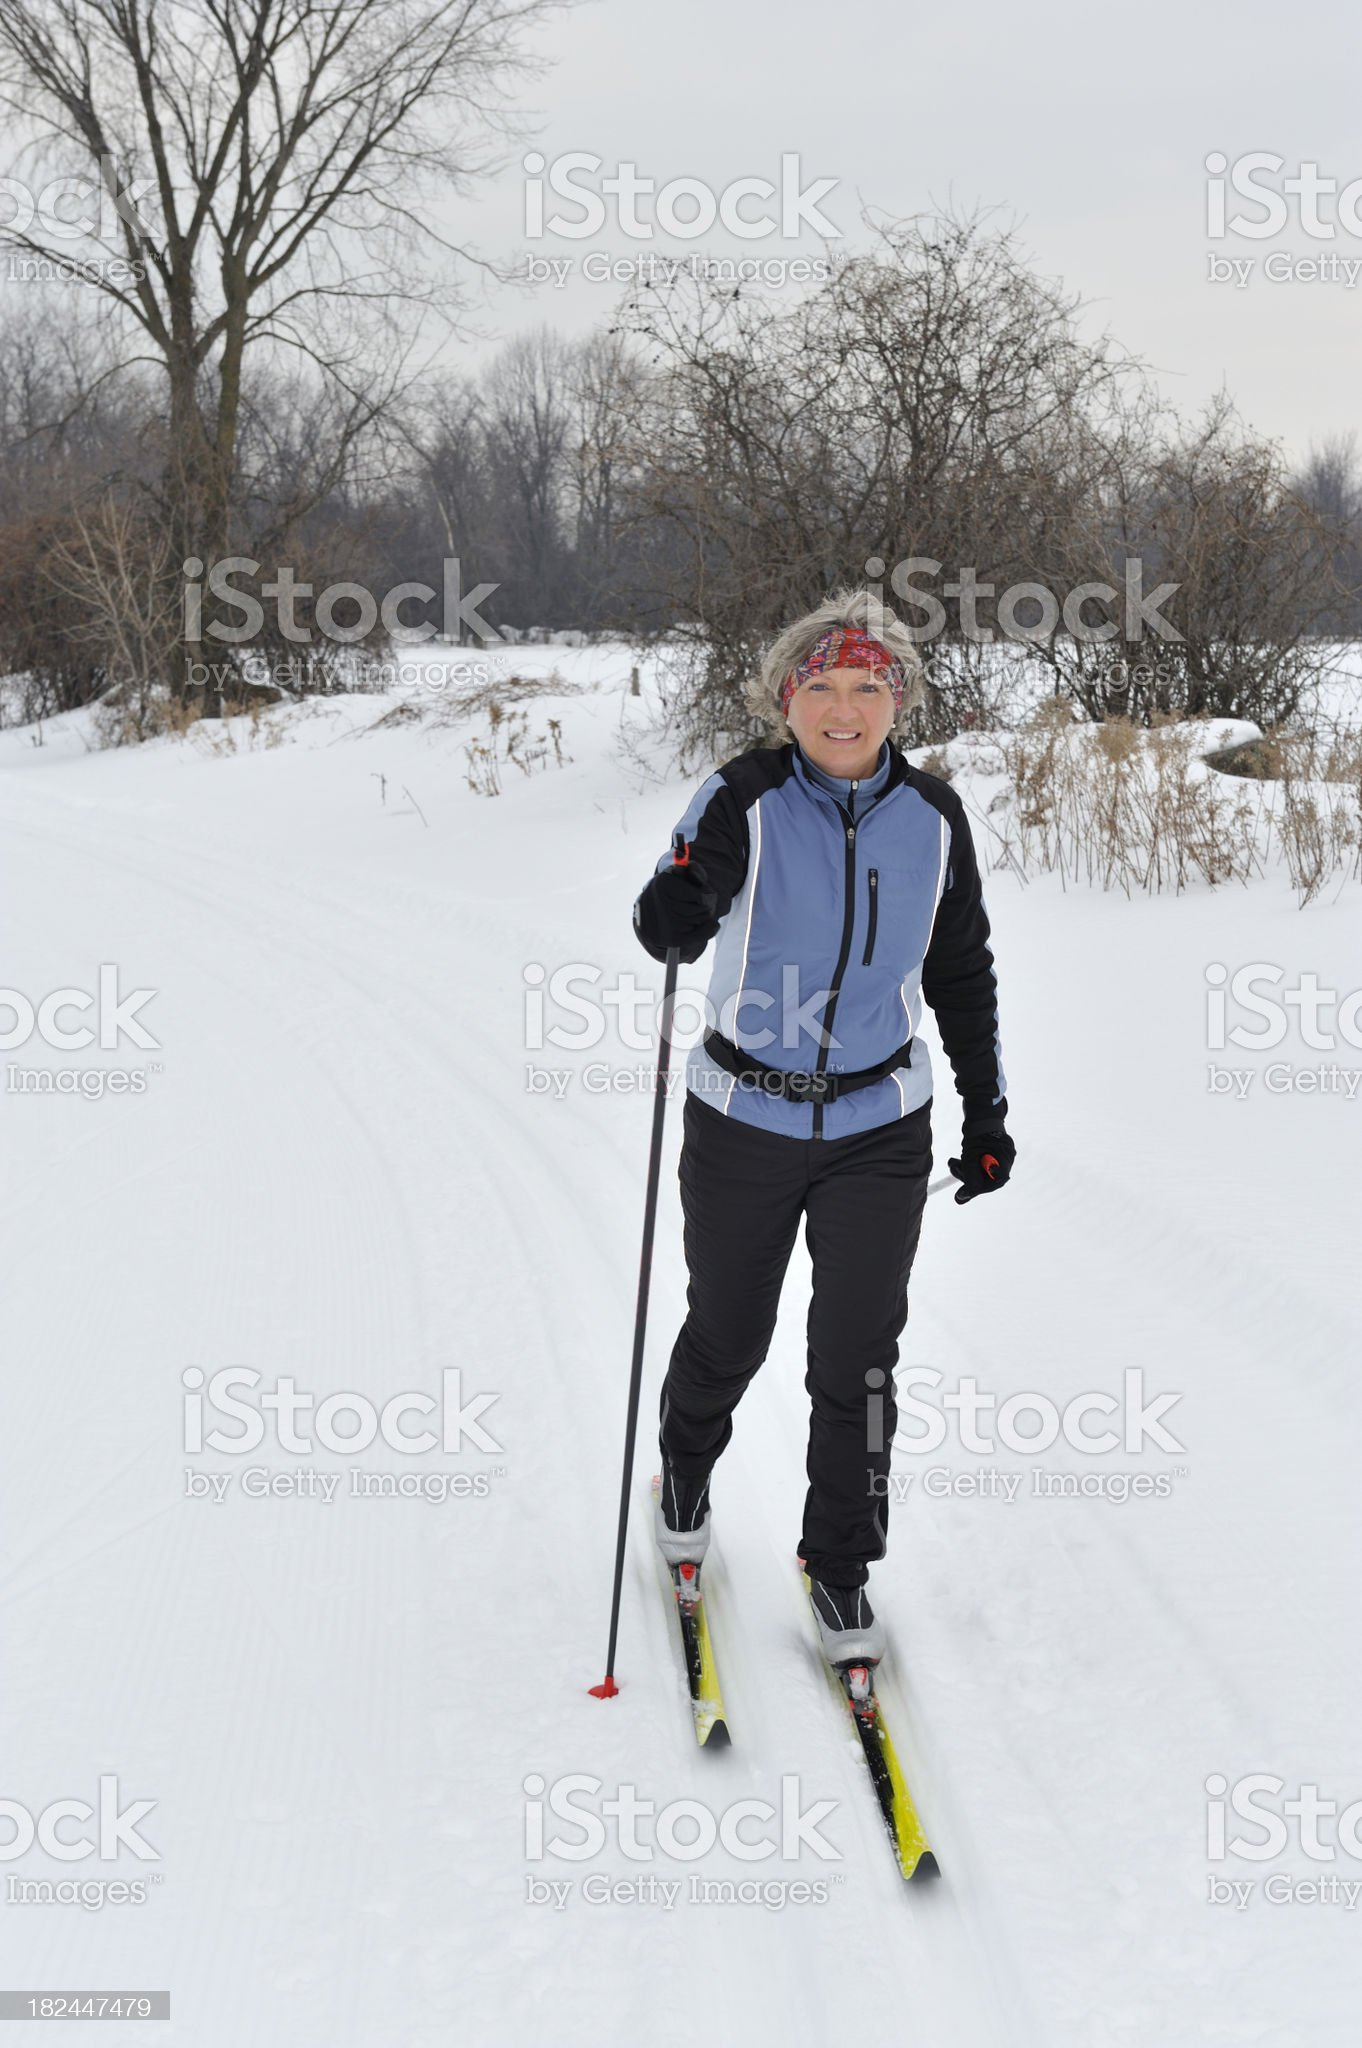 Cross-country skiing, smiling woman, winter sport royalty-free stock photo